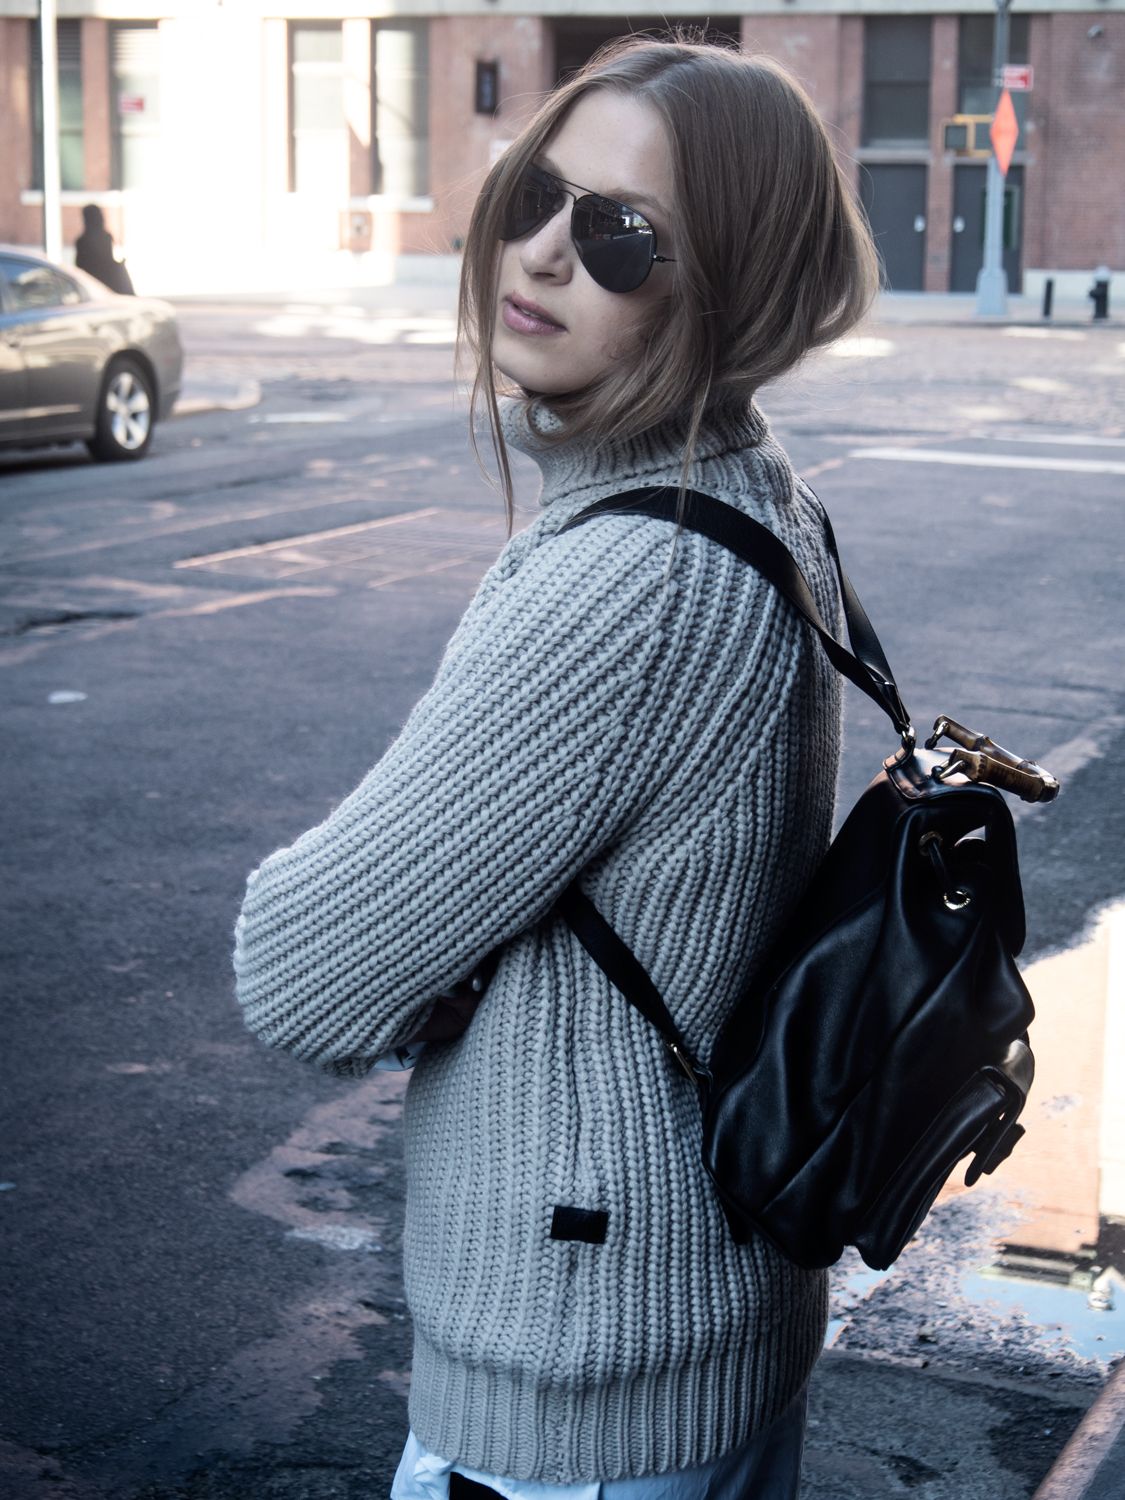 Meatpacking District – Catching last rays of sunshine wearing my cozy turtleneck